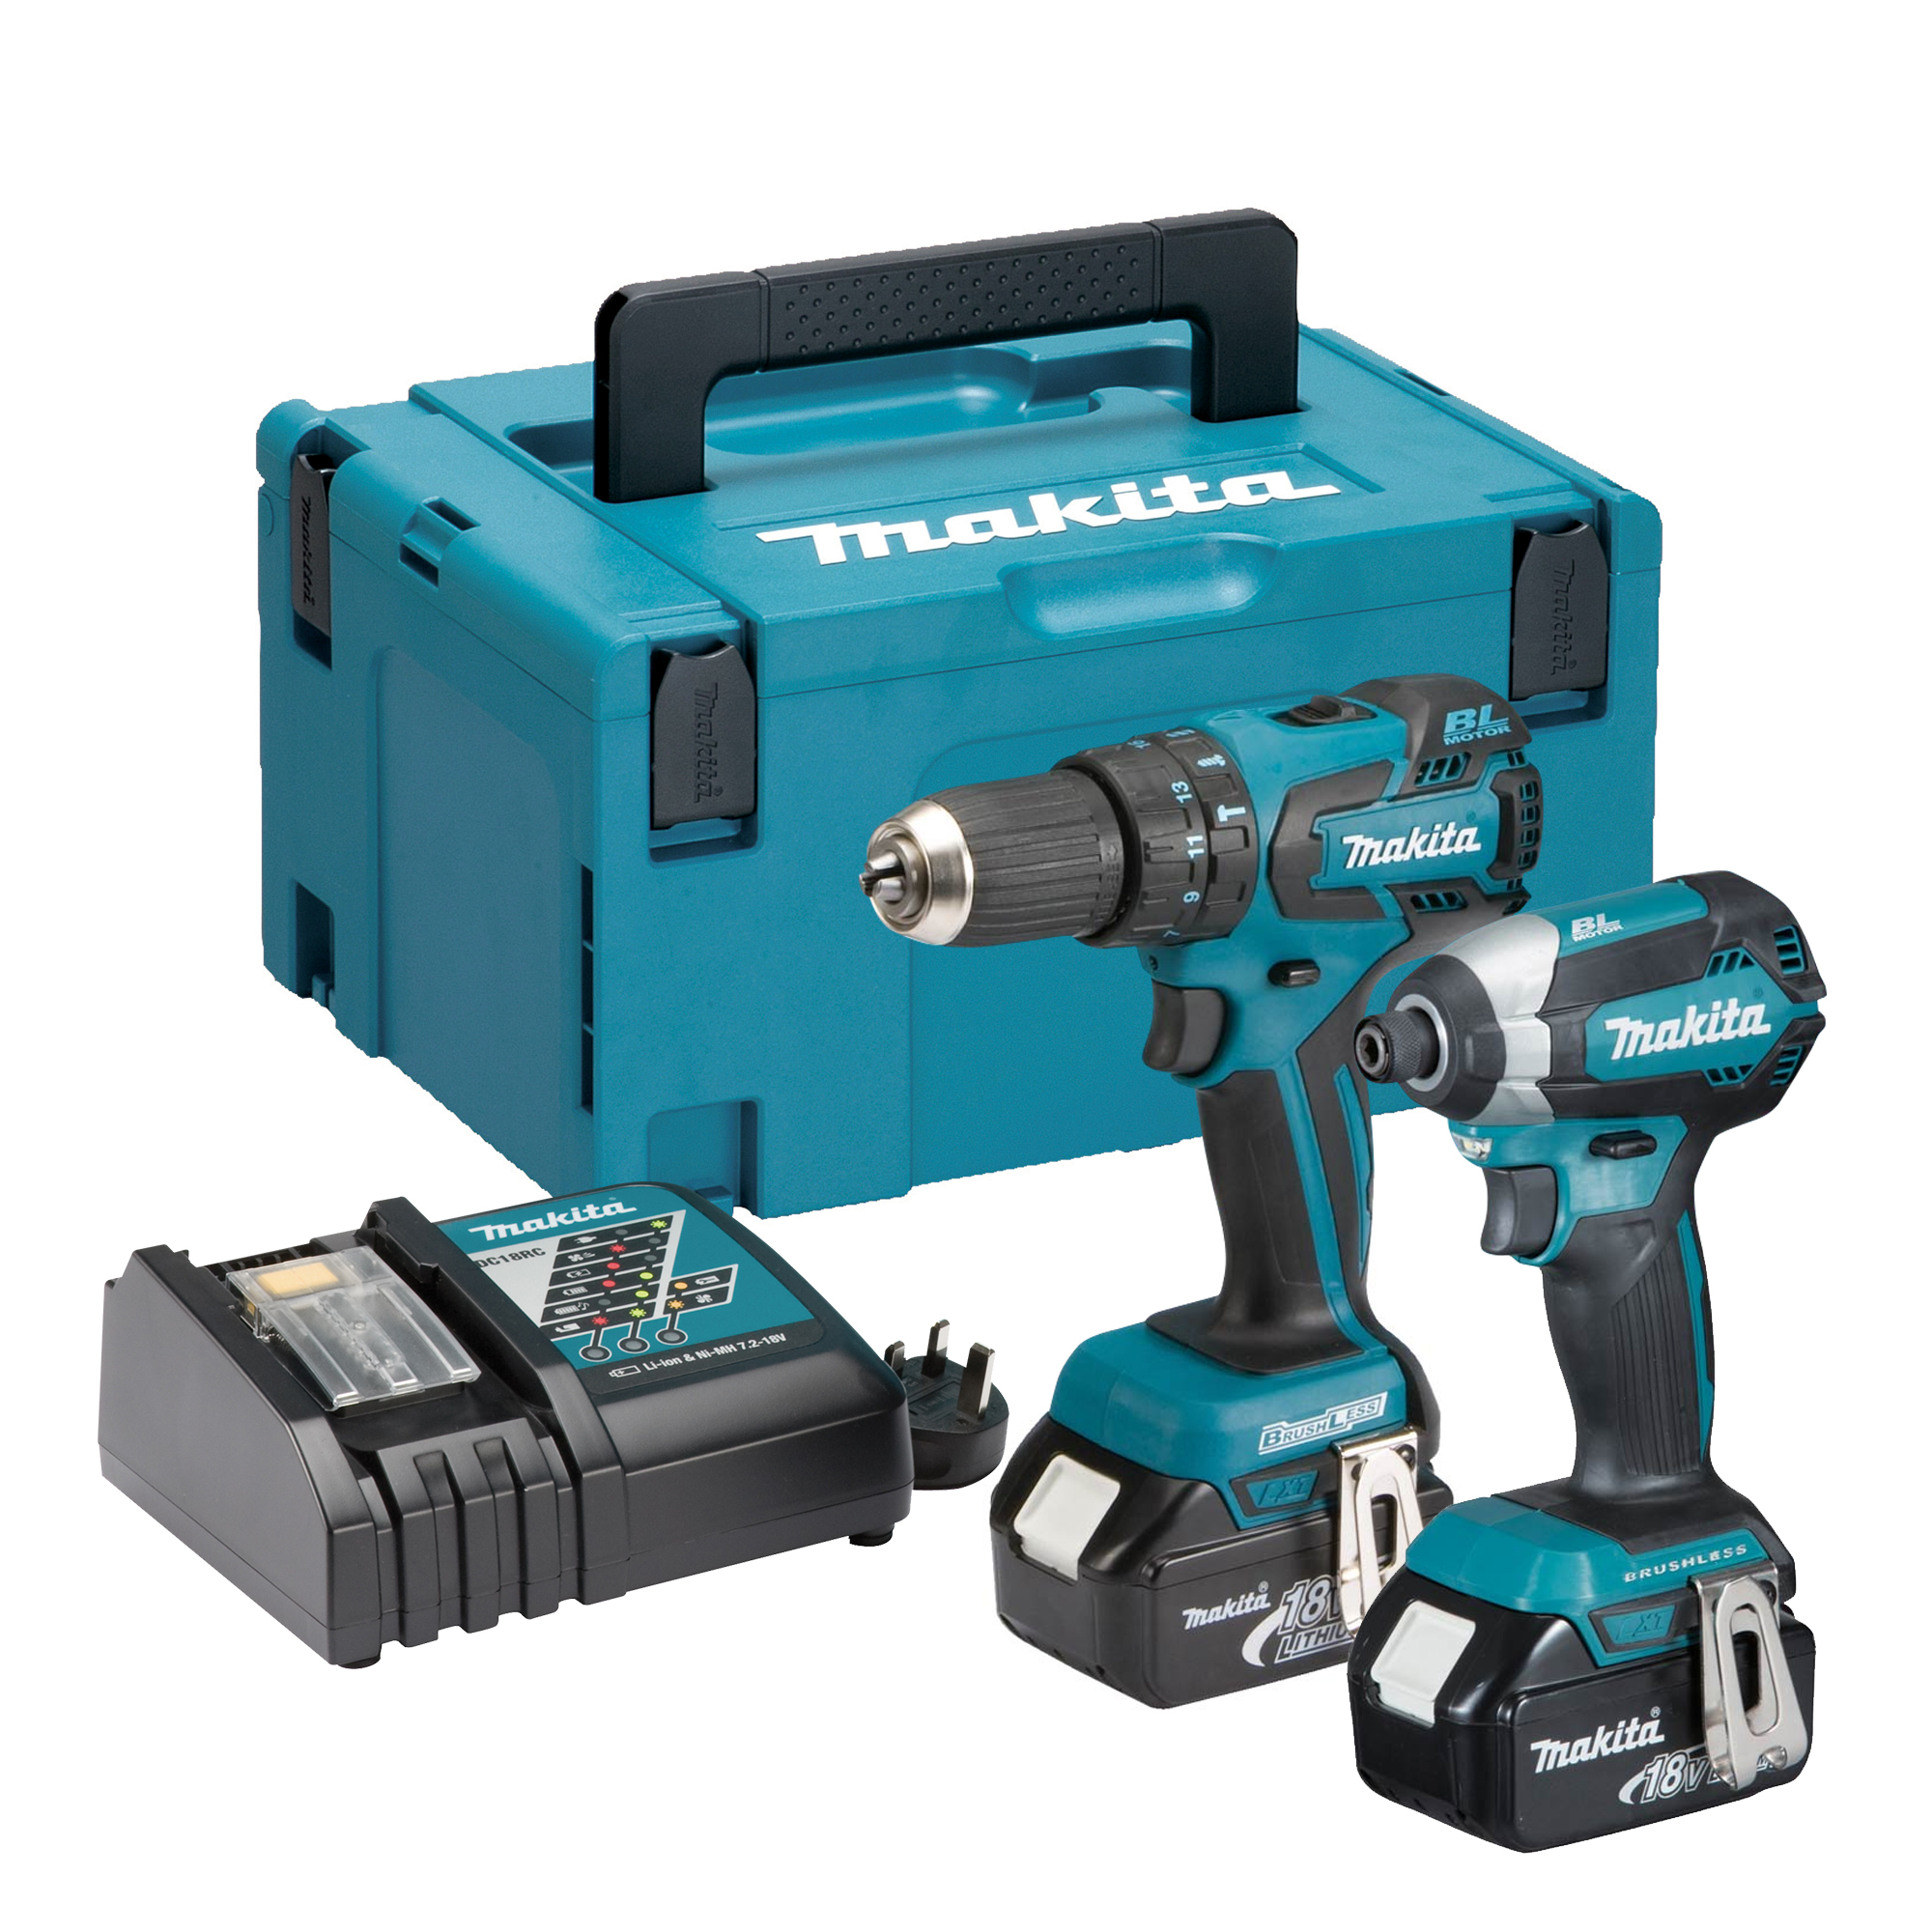 makita dlx2173rj makita 18v li ion 3 0ah brushless 2. Black Bedroom Furniture Sets. Home Design Ideas